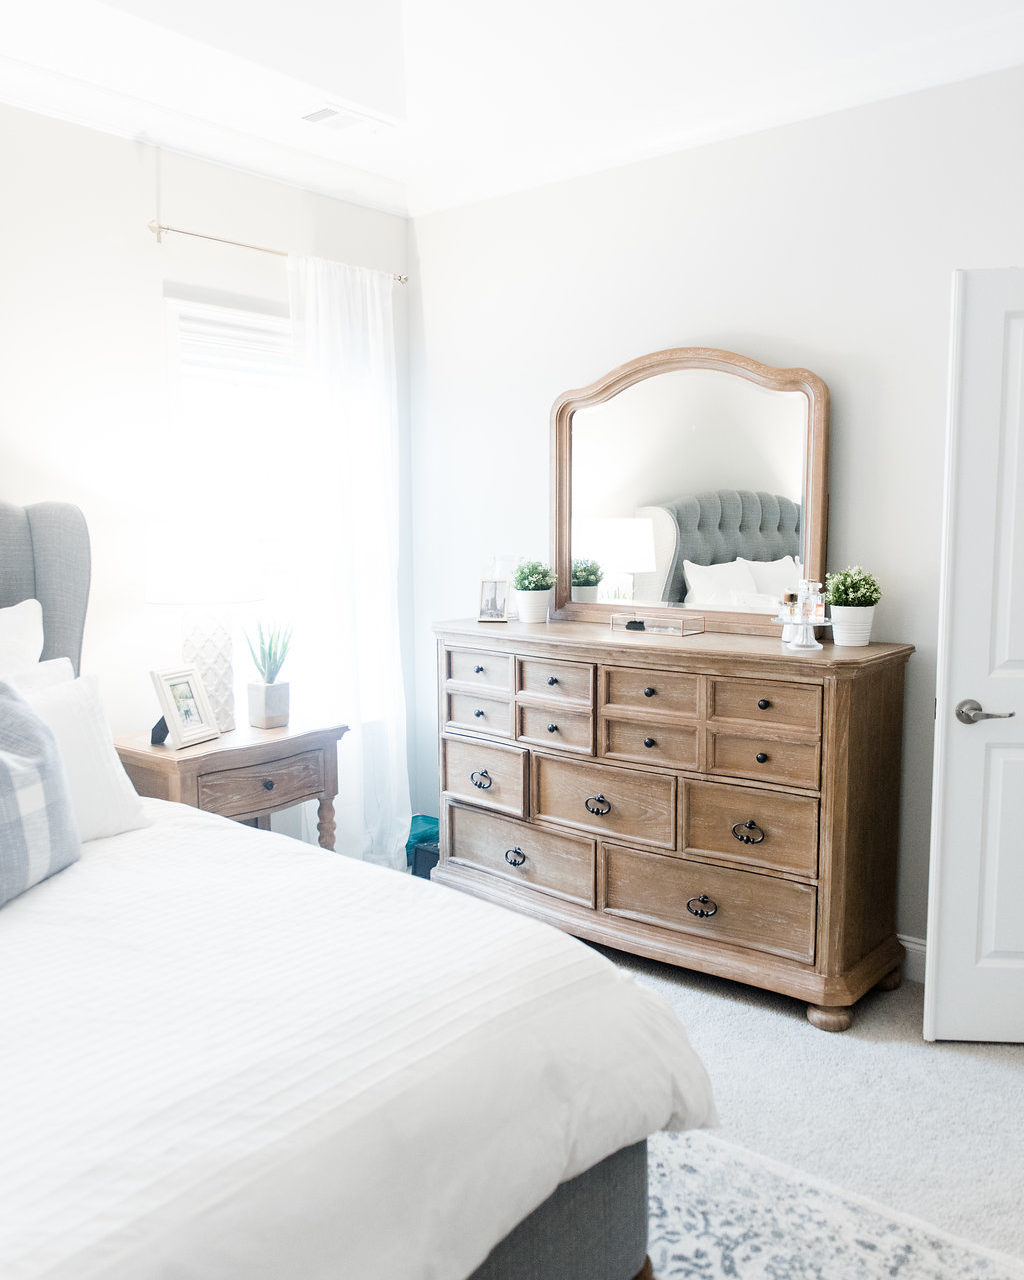 Home Reveal – Master Bedroom